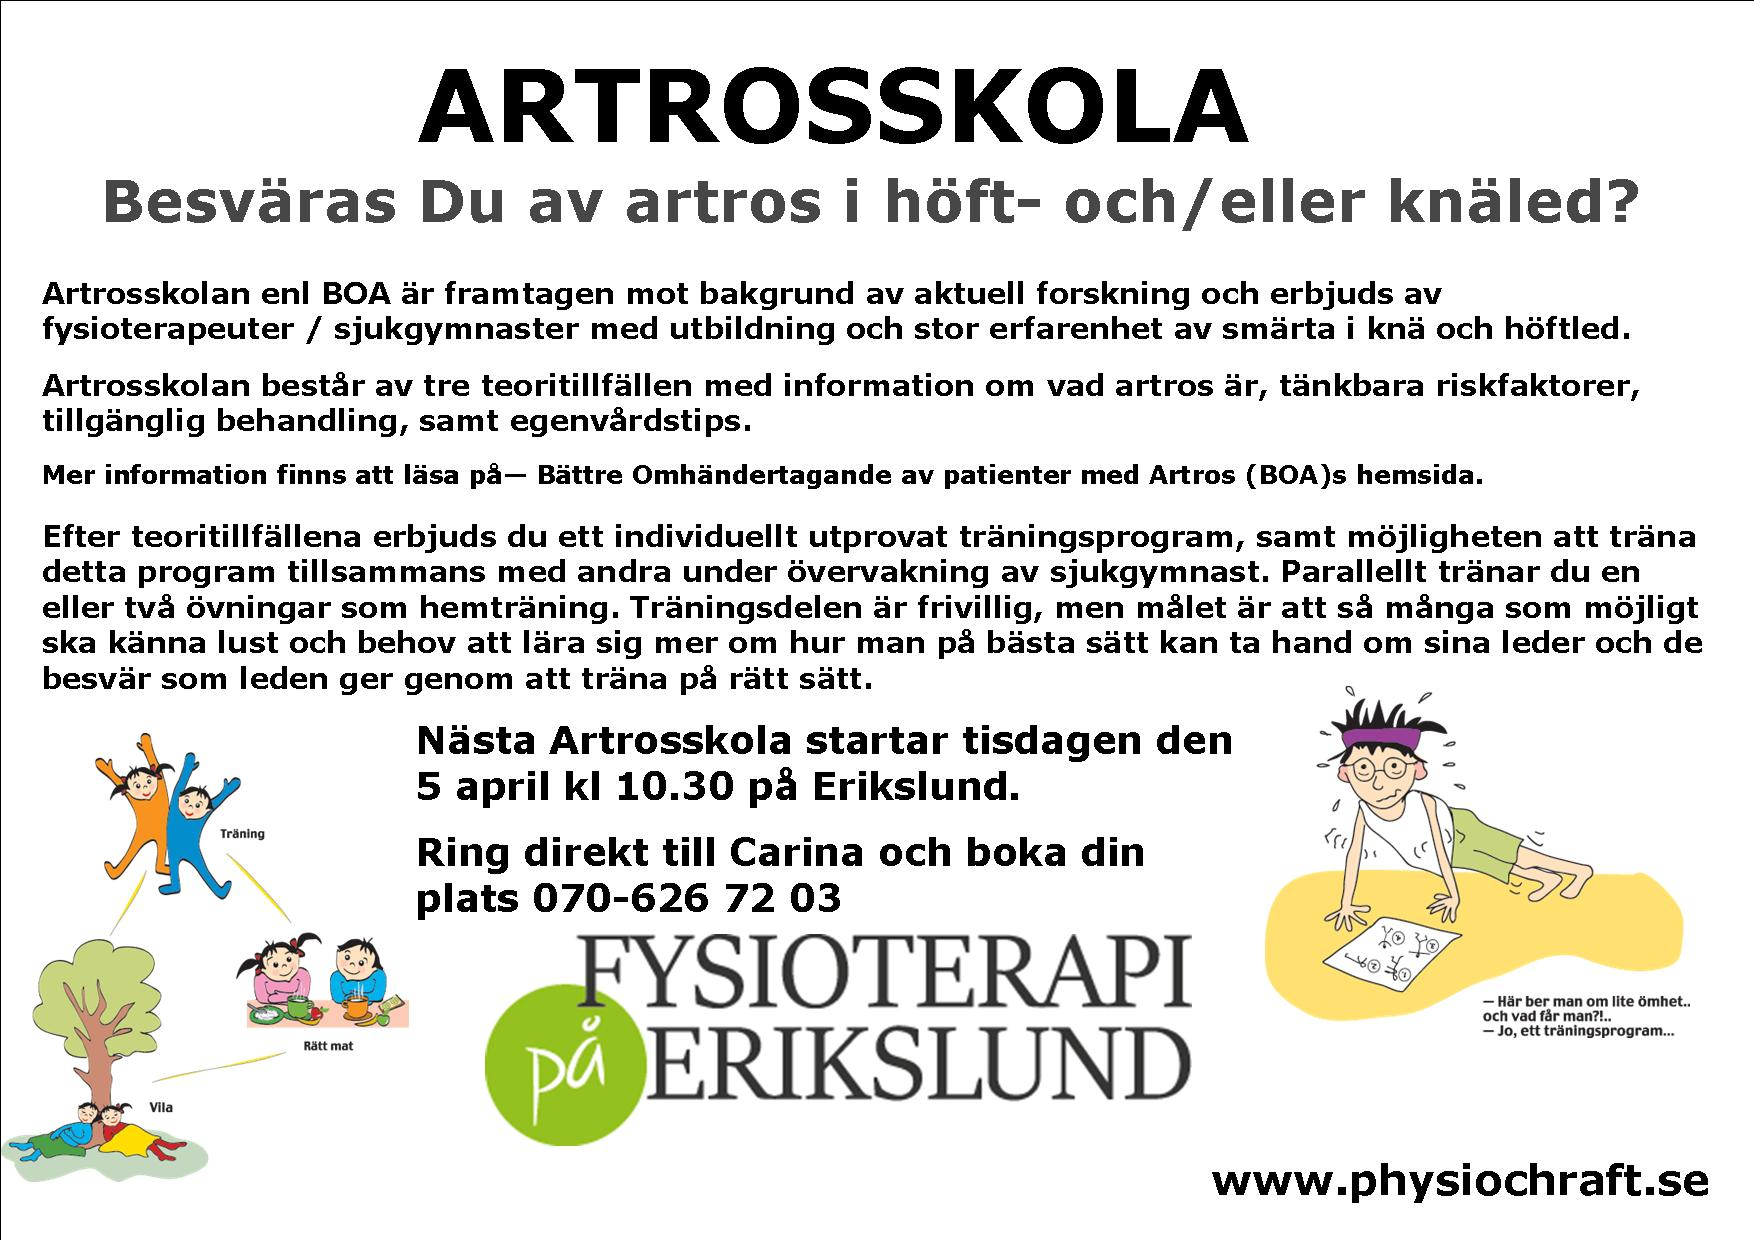 Artrosskola på Erikslund - start 5 april